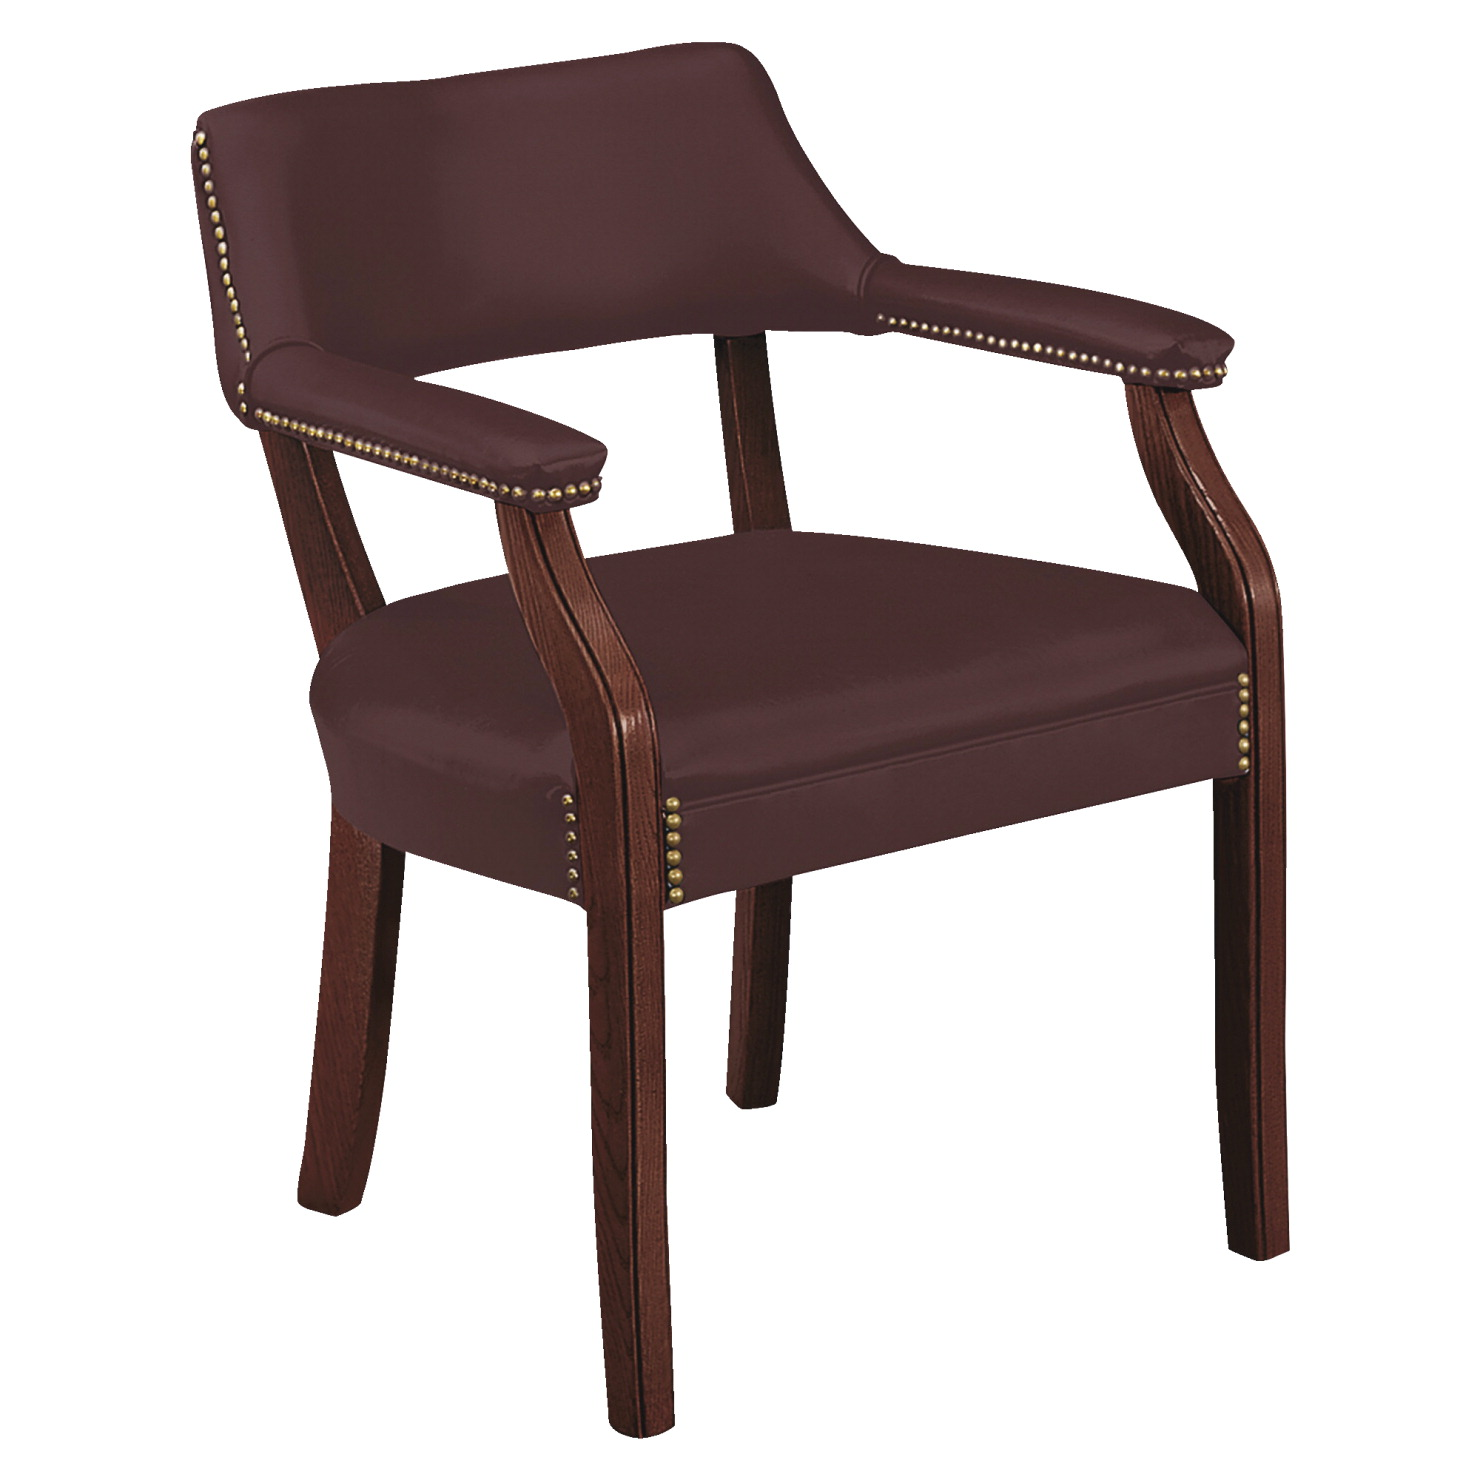 HON Hardwood Frame Guest Chair, Merlot - SOAR Life Products